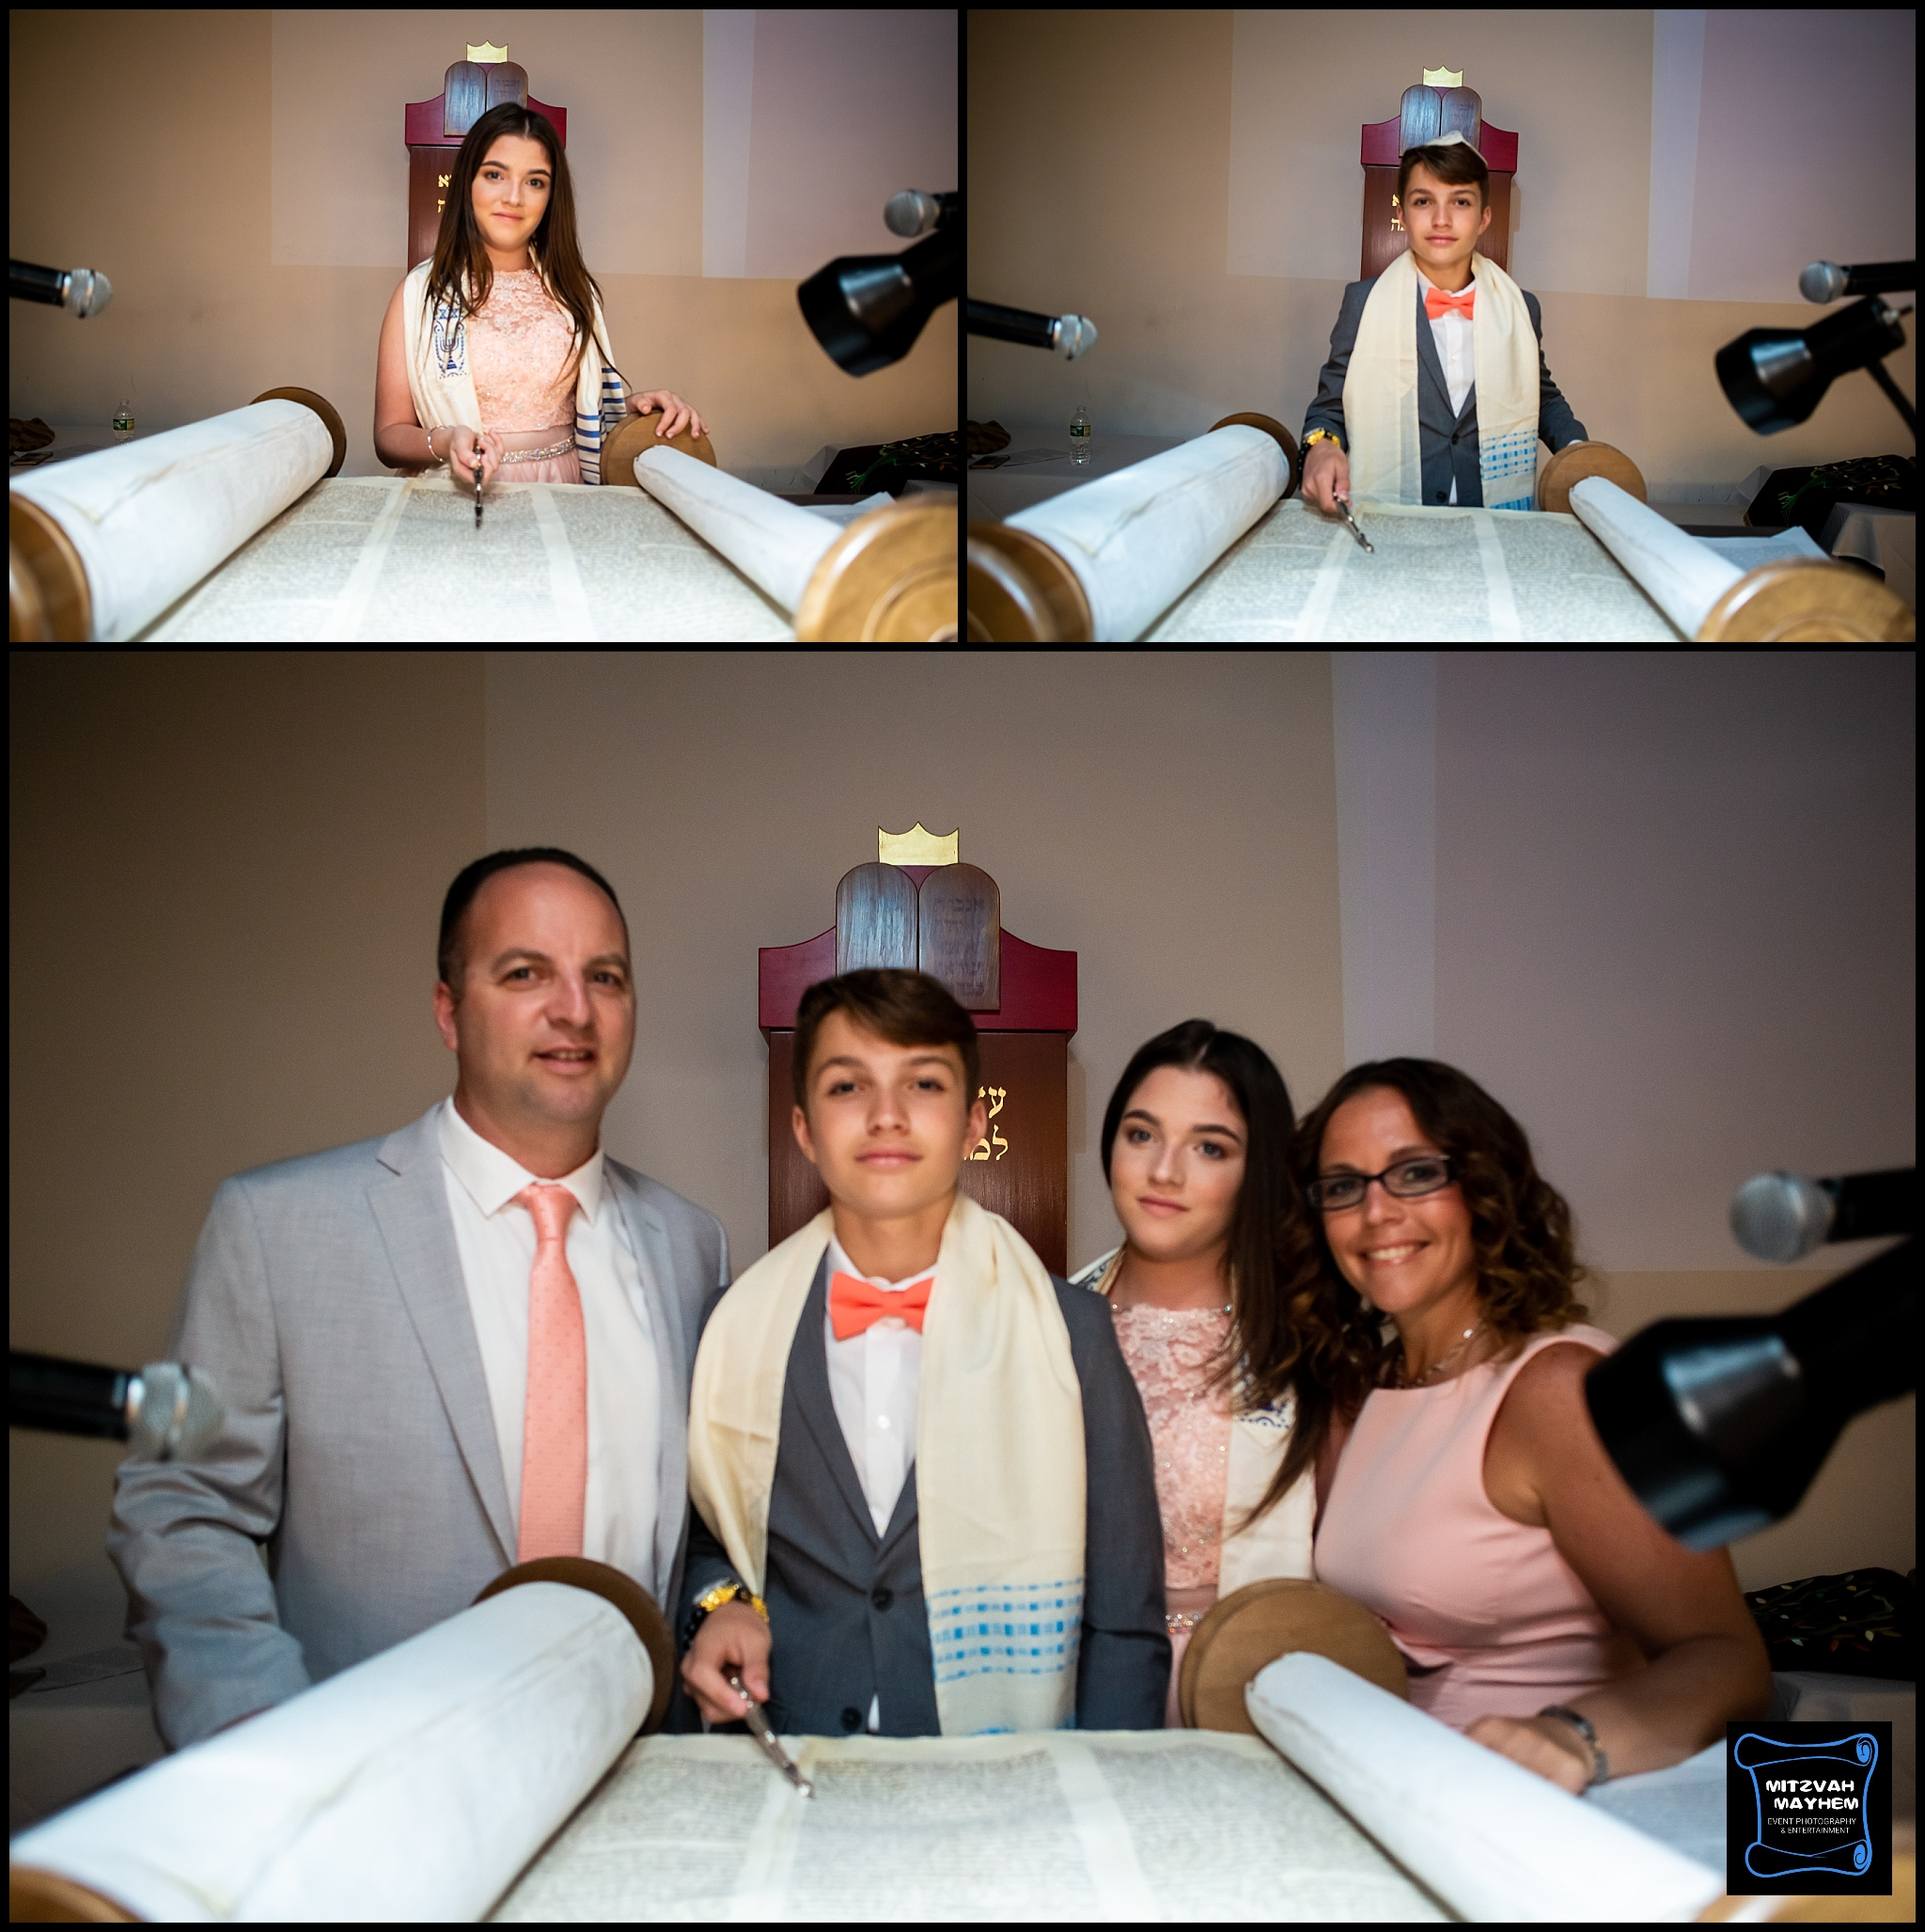 pure-event-center-space-nj-mitzvah-photographer (8).jpg